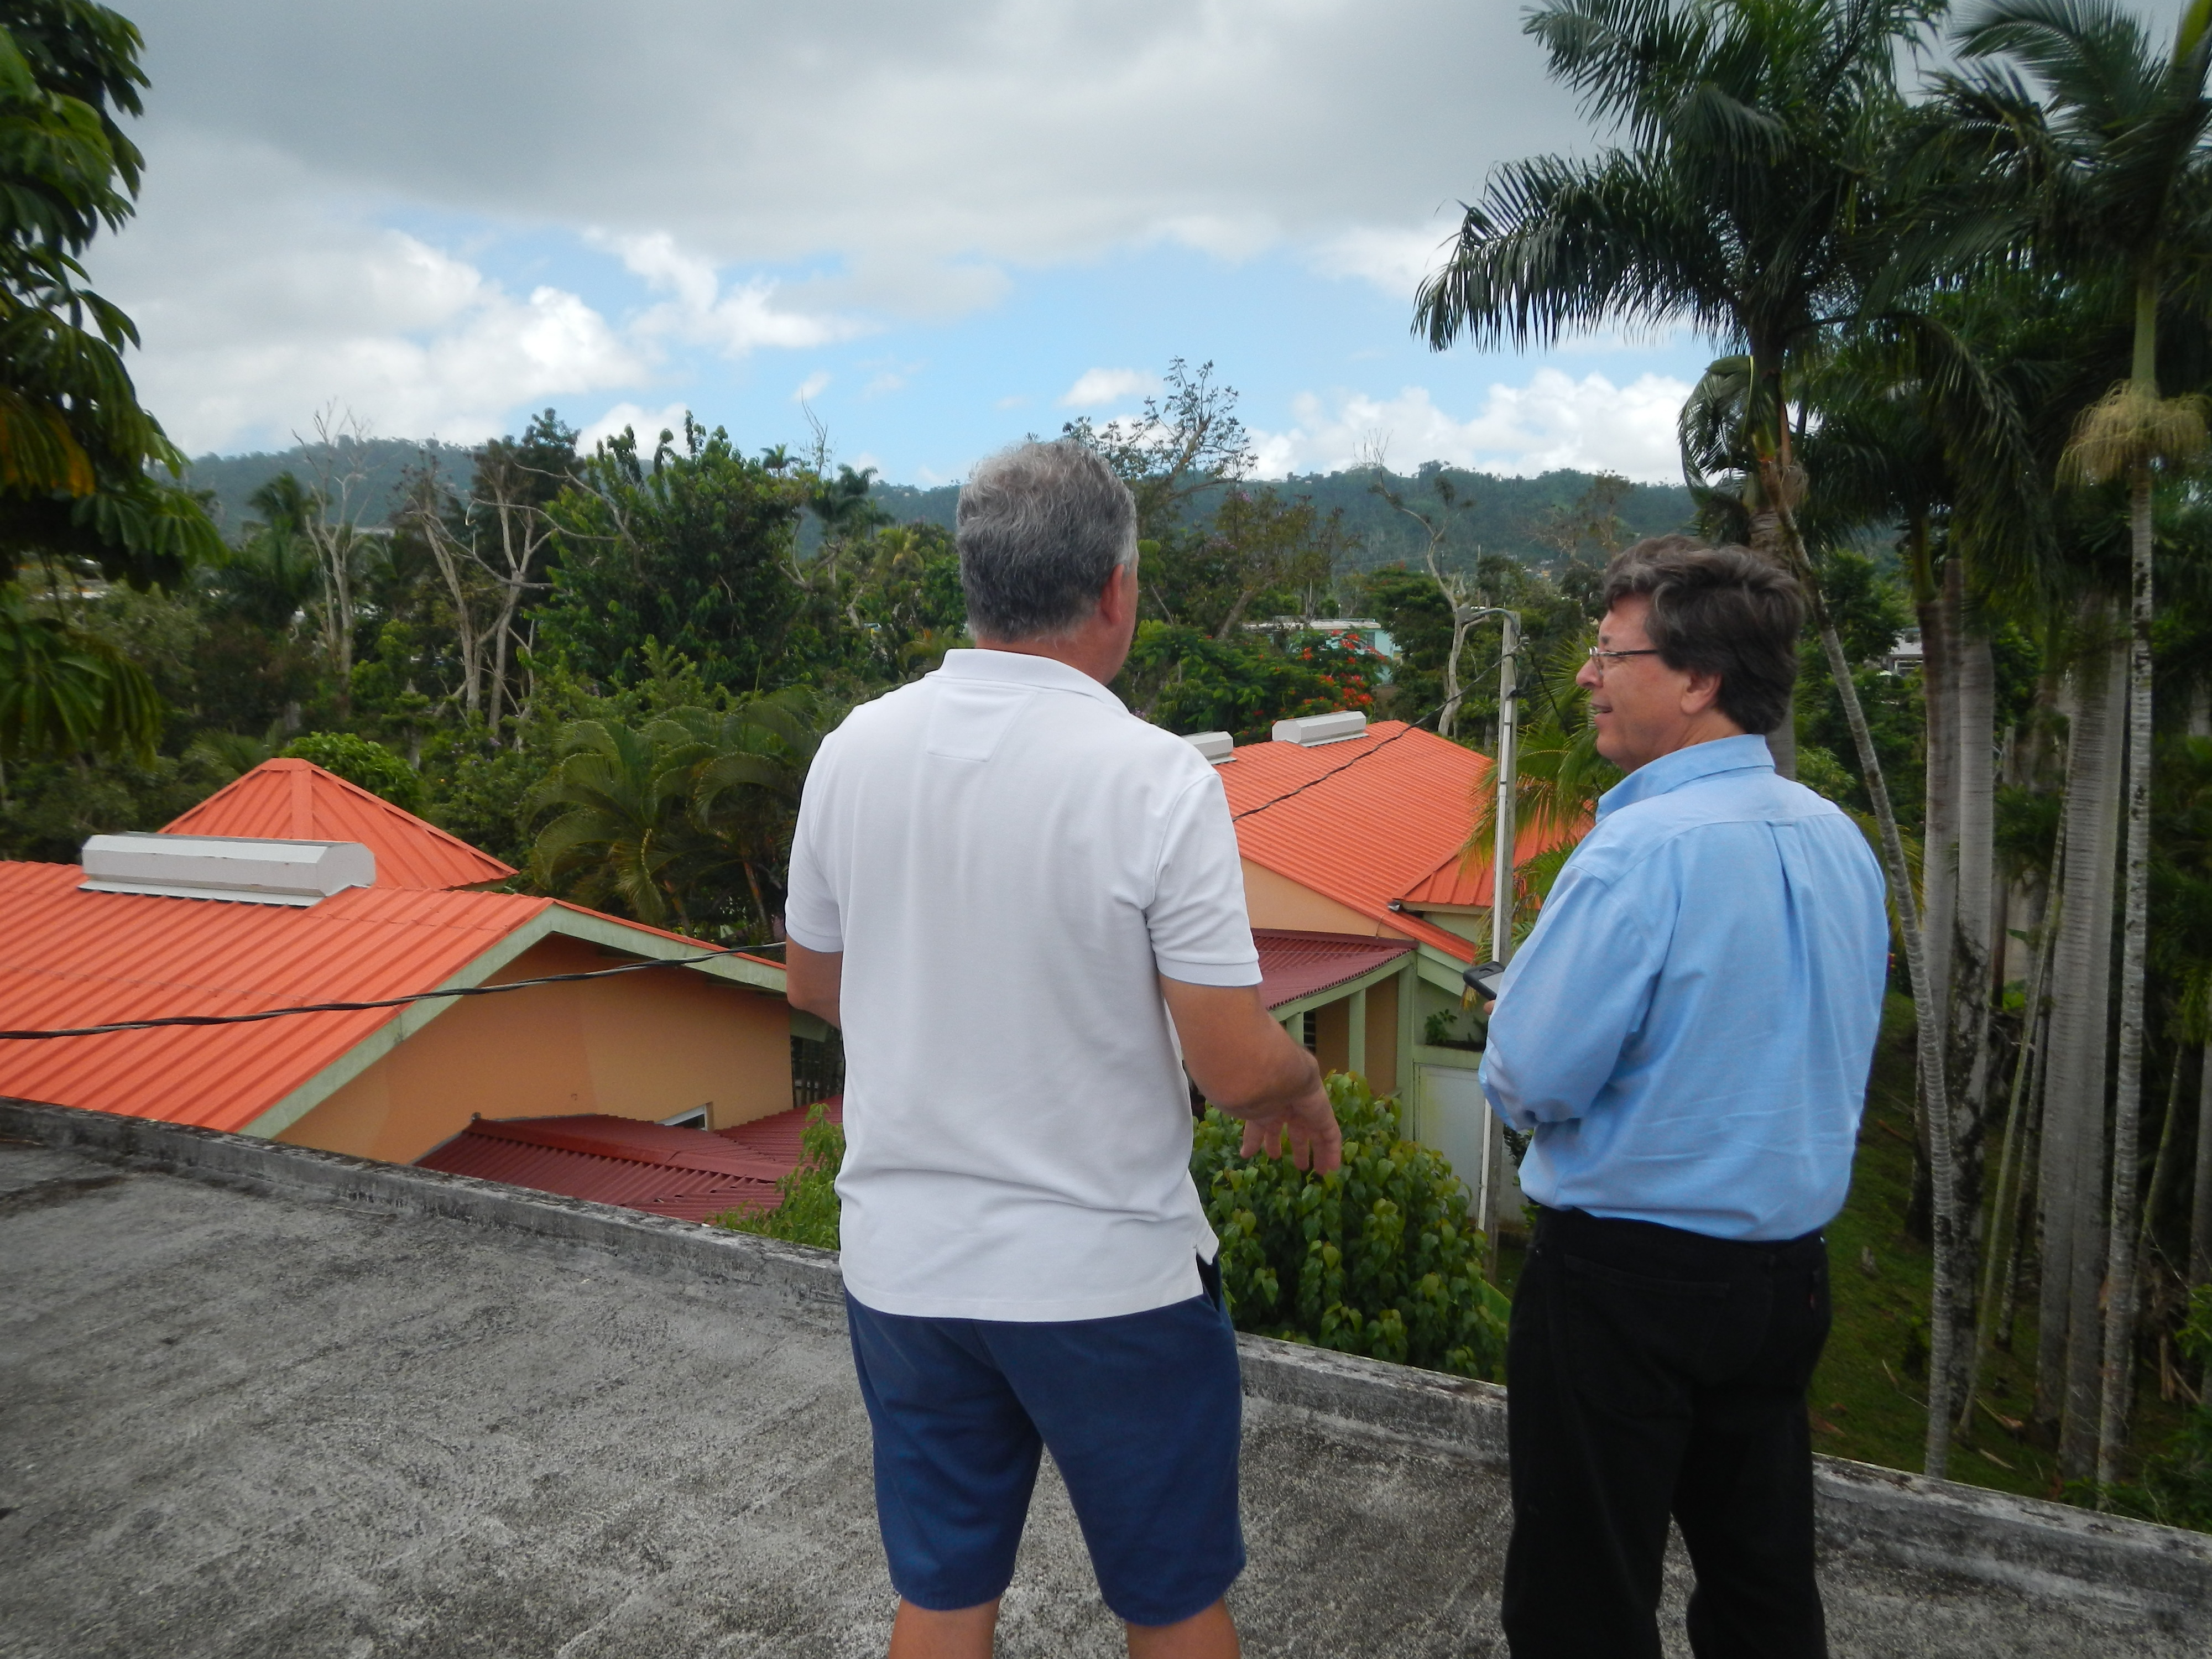 Two people discuss the solar panels on the roof of the school.